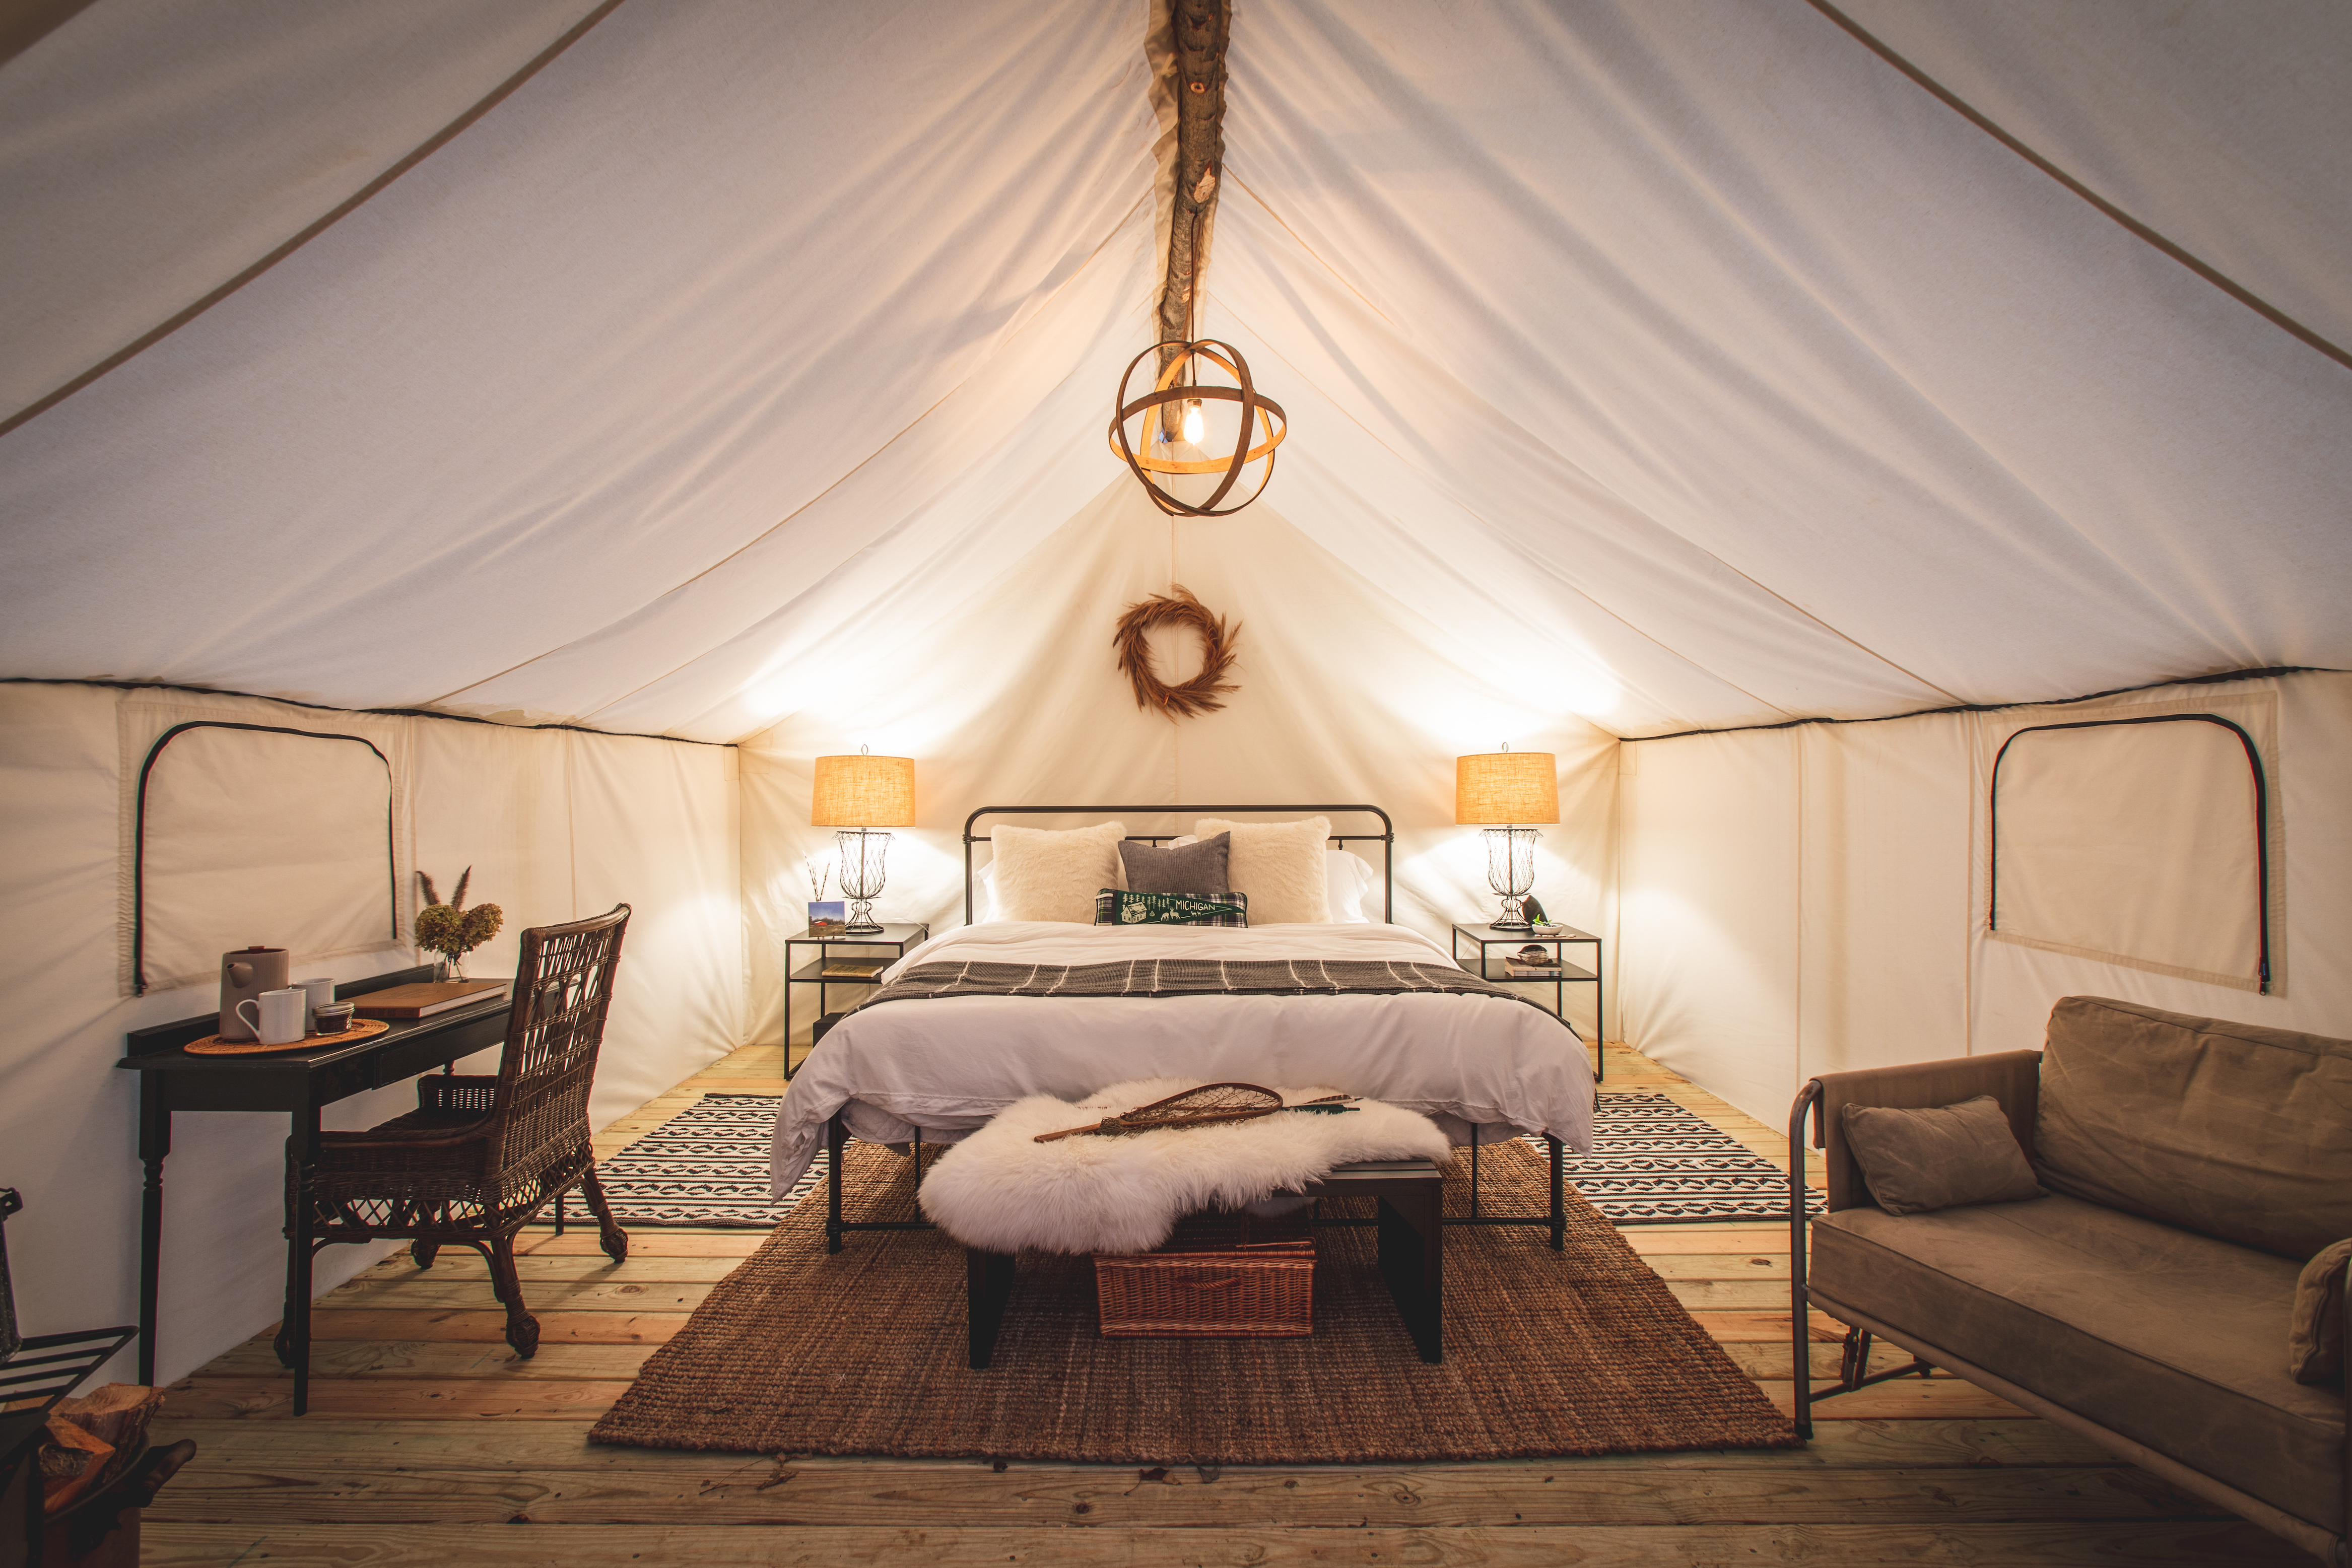 We're So There: This New Midwest Glamping Destination Offers Blueberry Picking